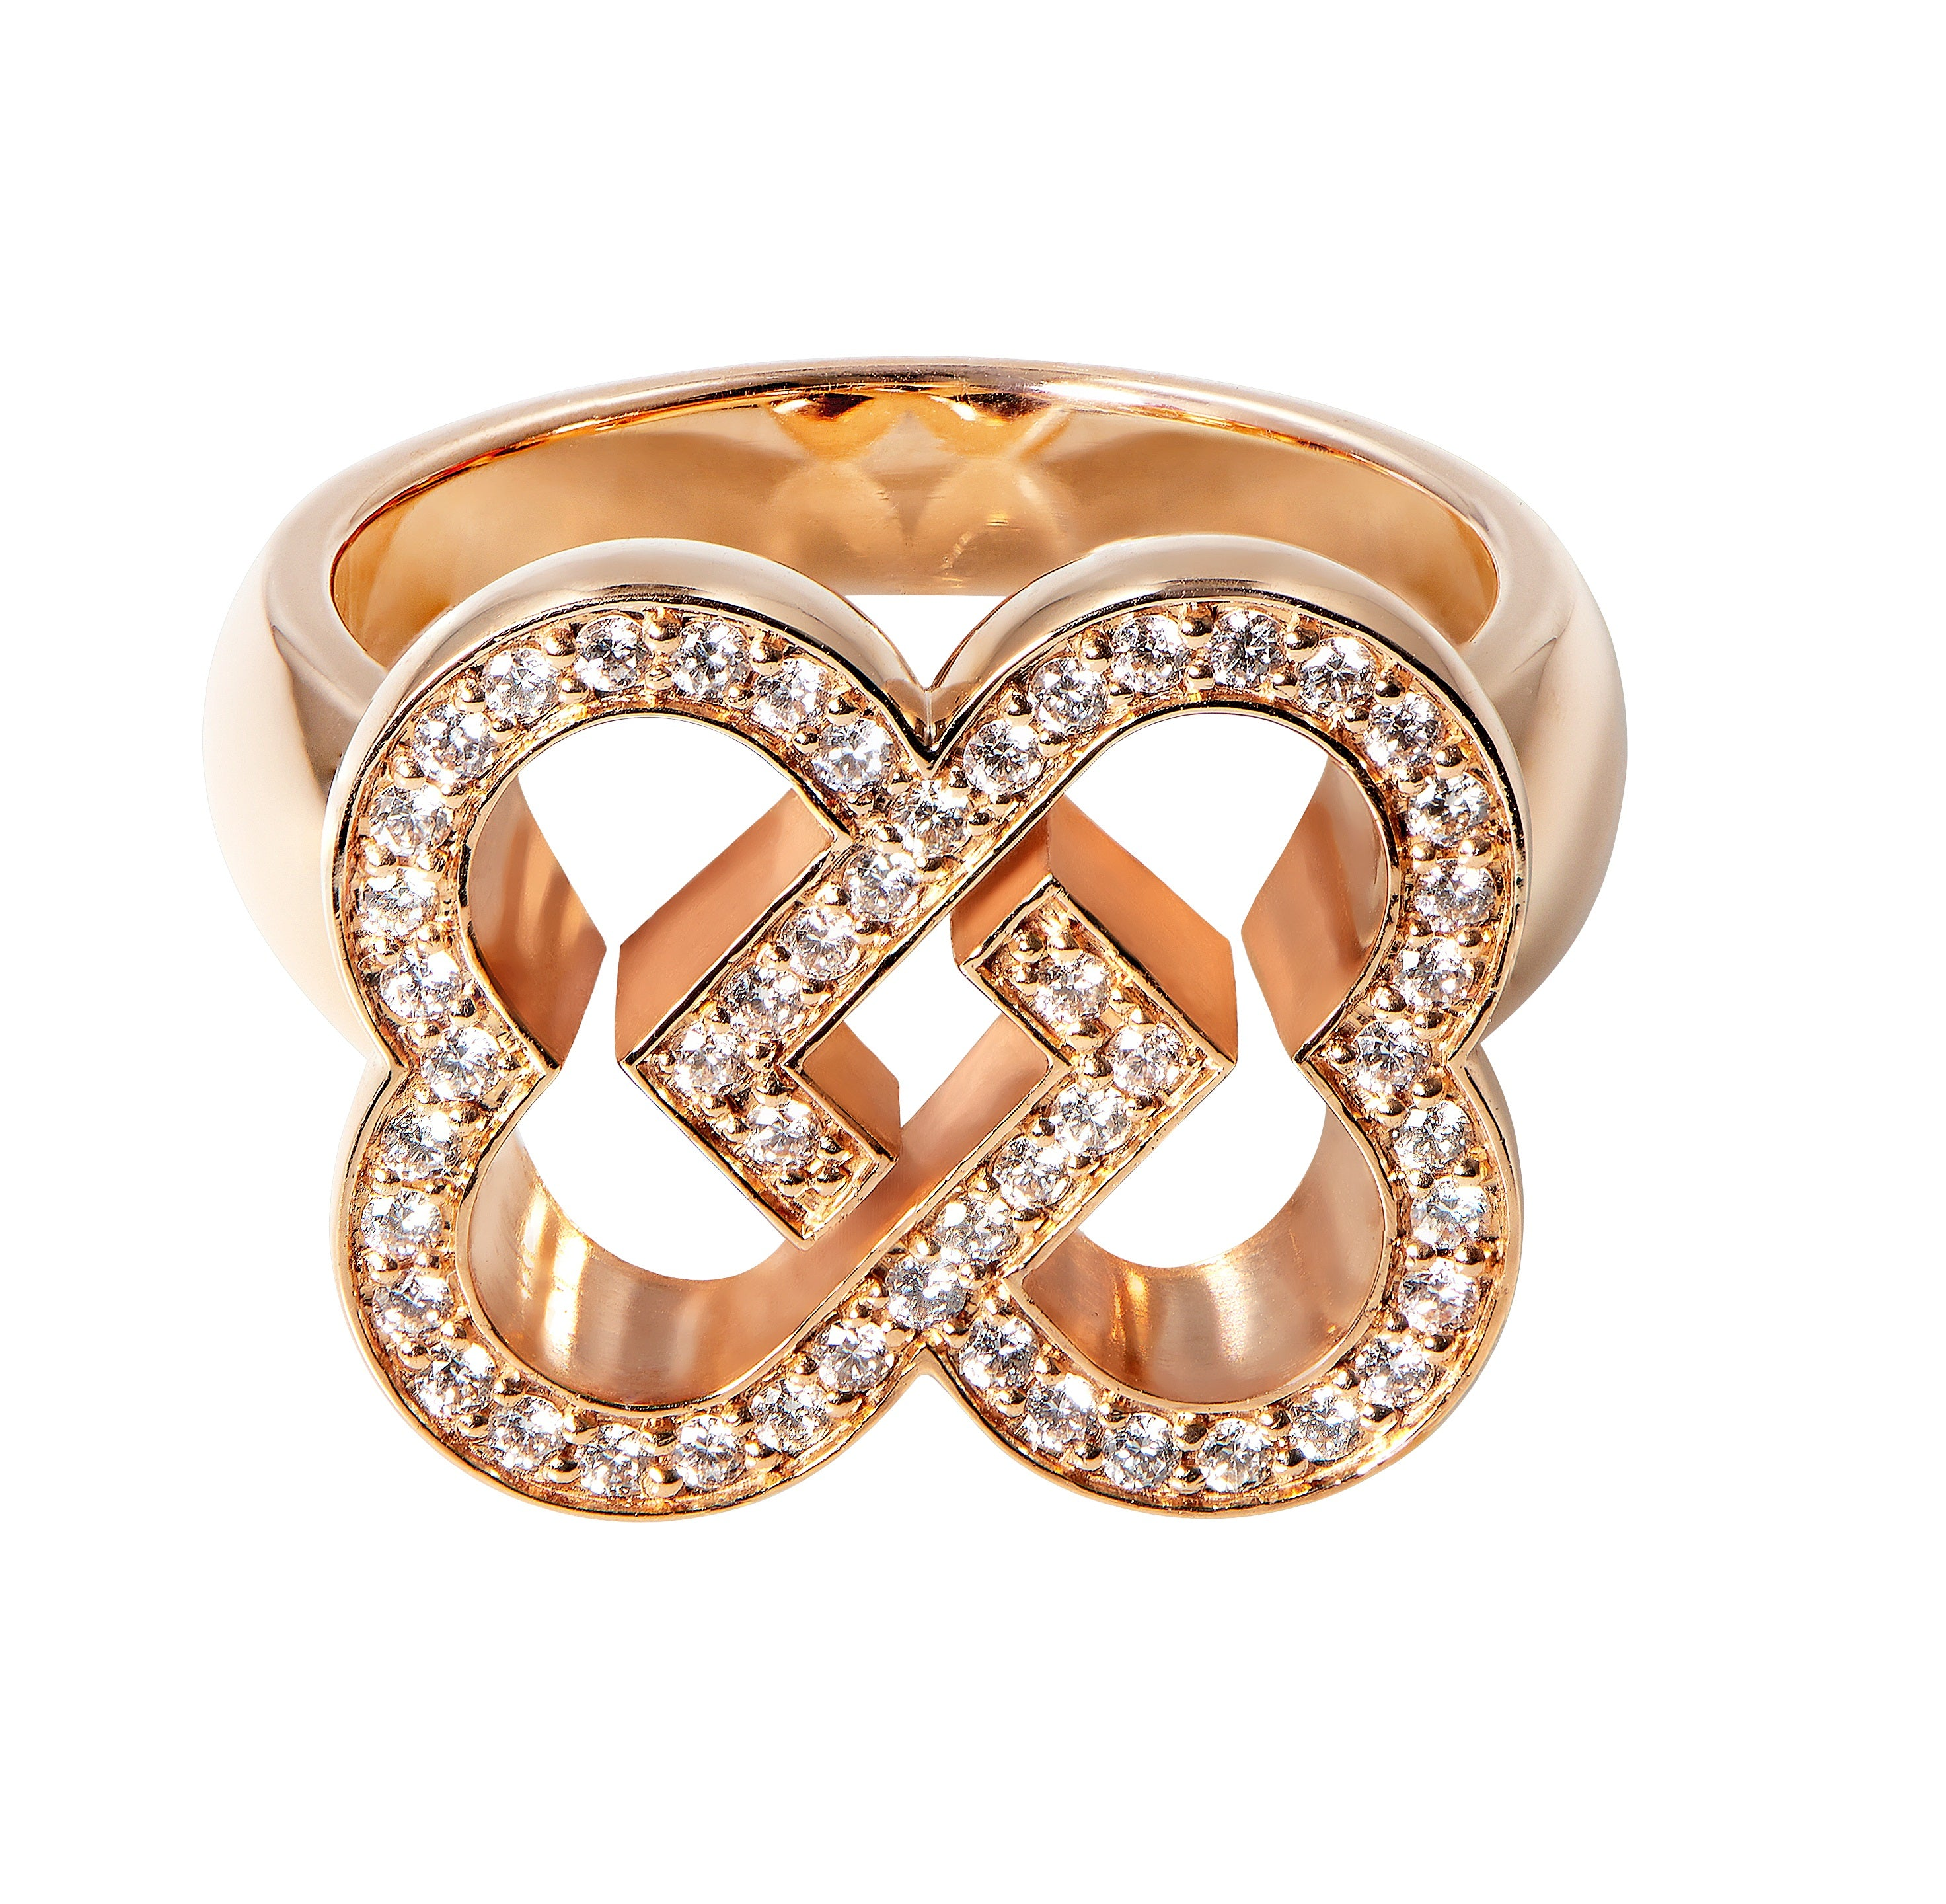 Big Love Ring in pink gold